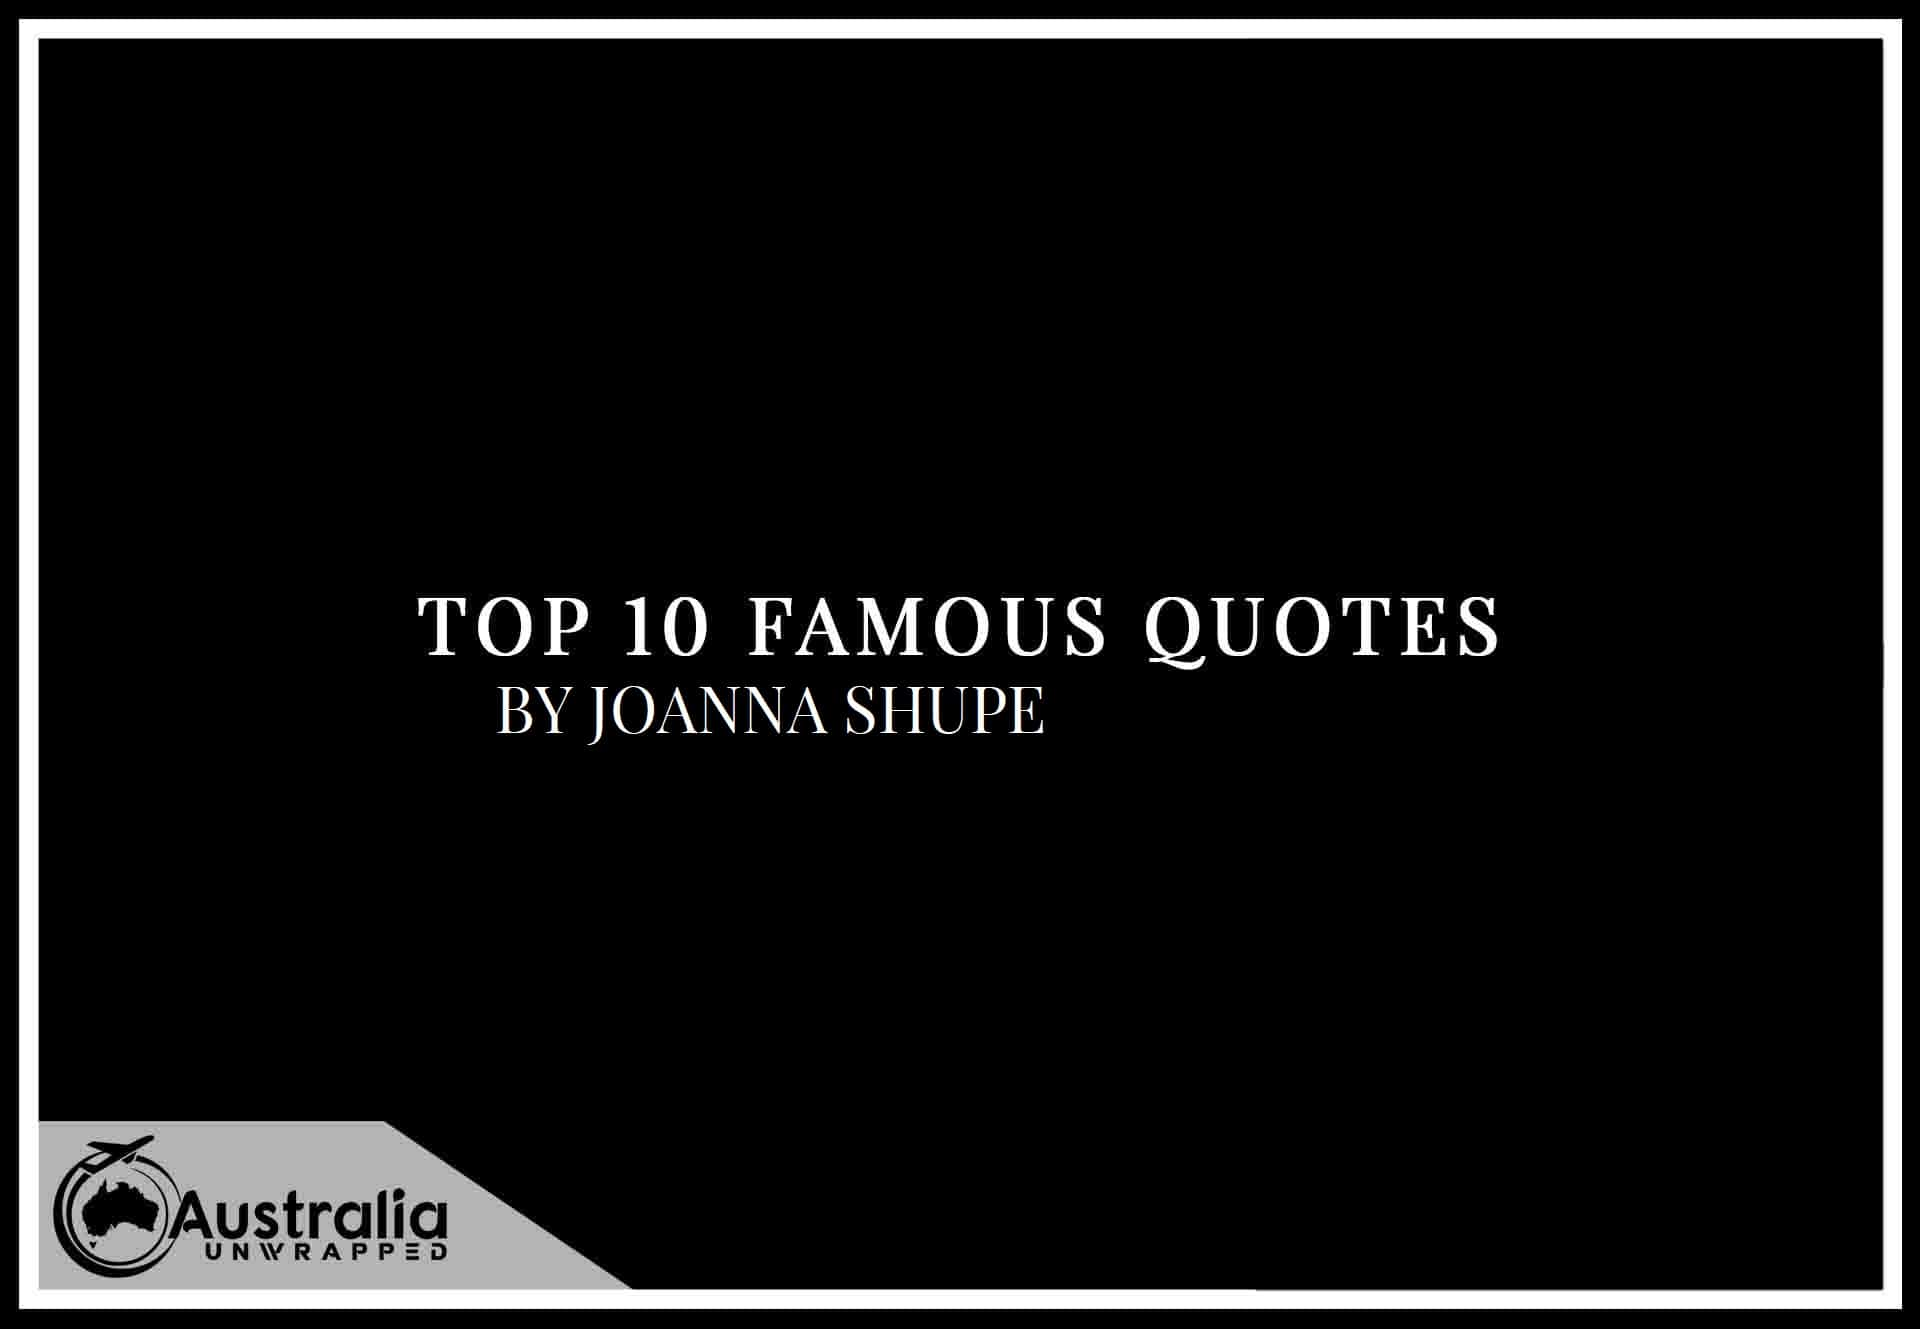 Top 10 Famous Quotes by Author Joanna Shupe